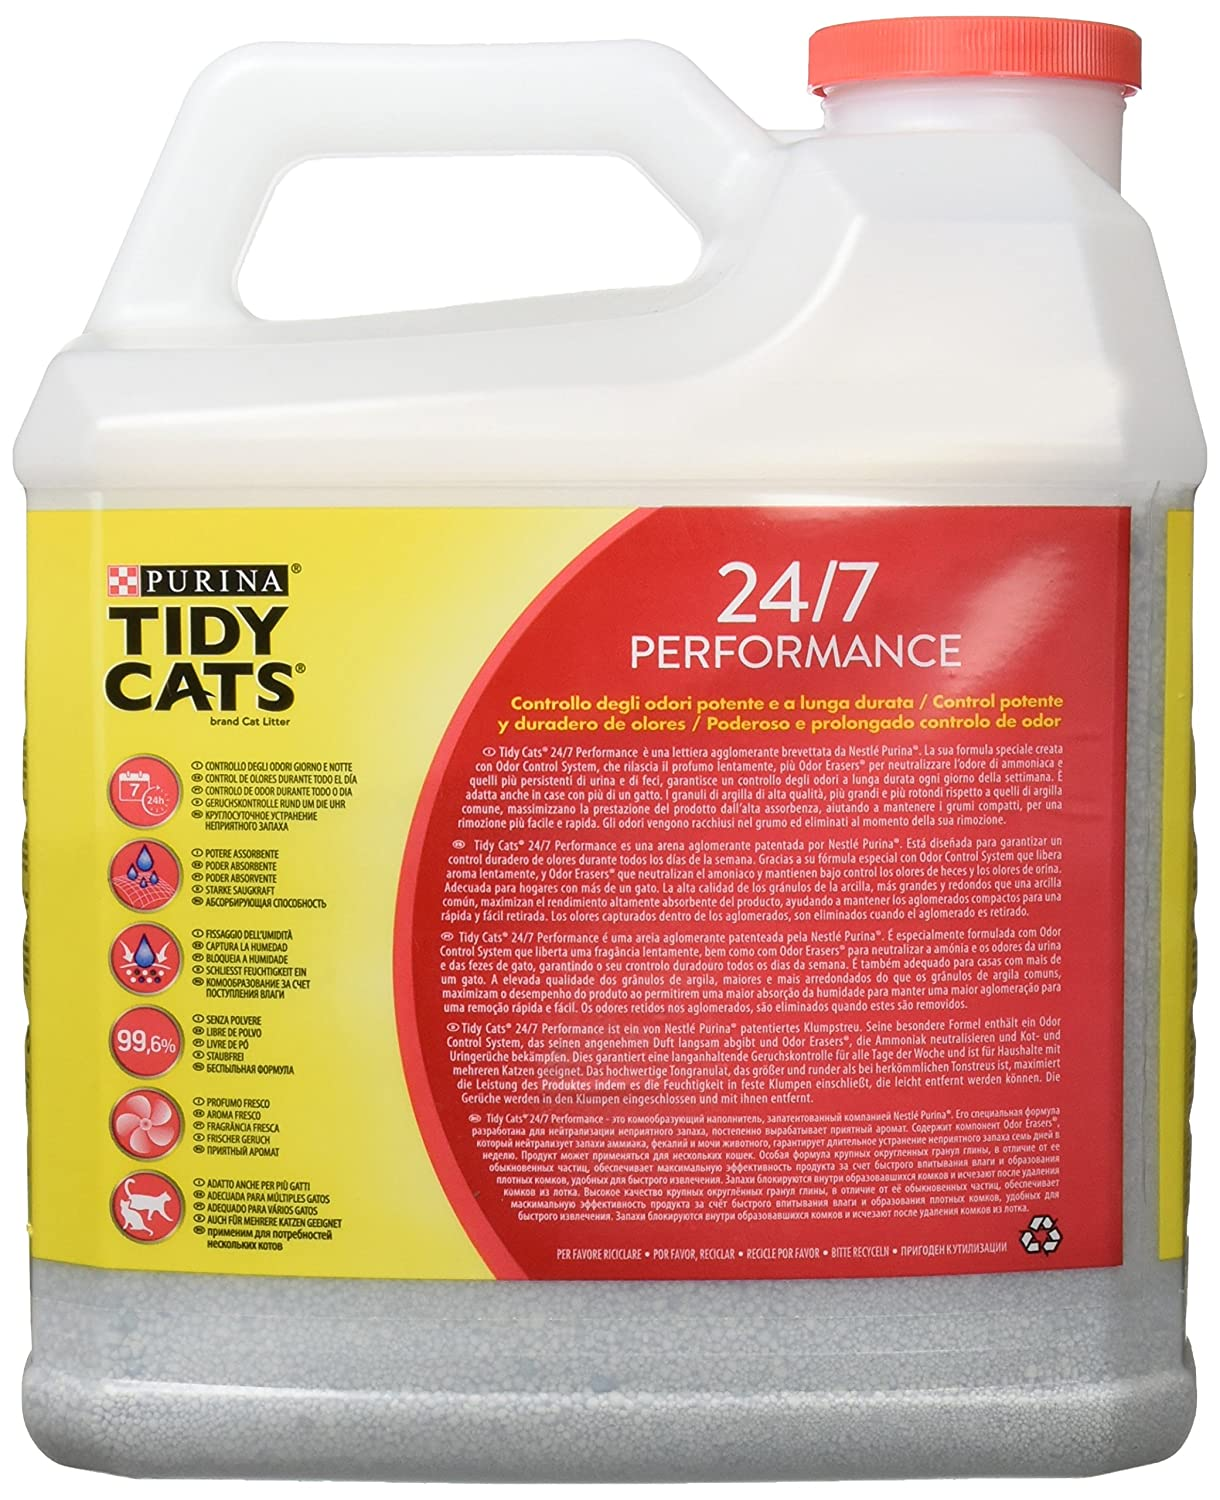 Purina Tydi Cats 24/7 perfumada Arena para gatos 6,35 Kg: Amazon.es: Amazon Pantry